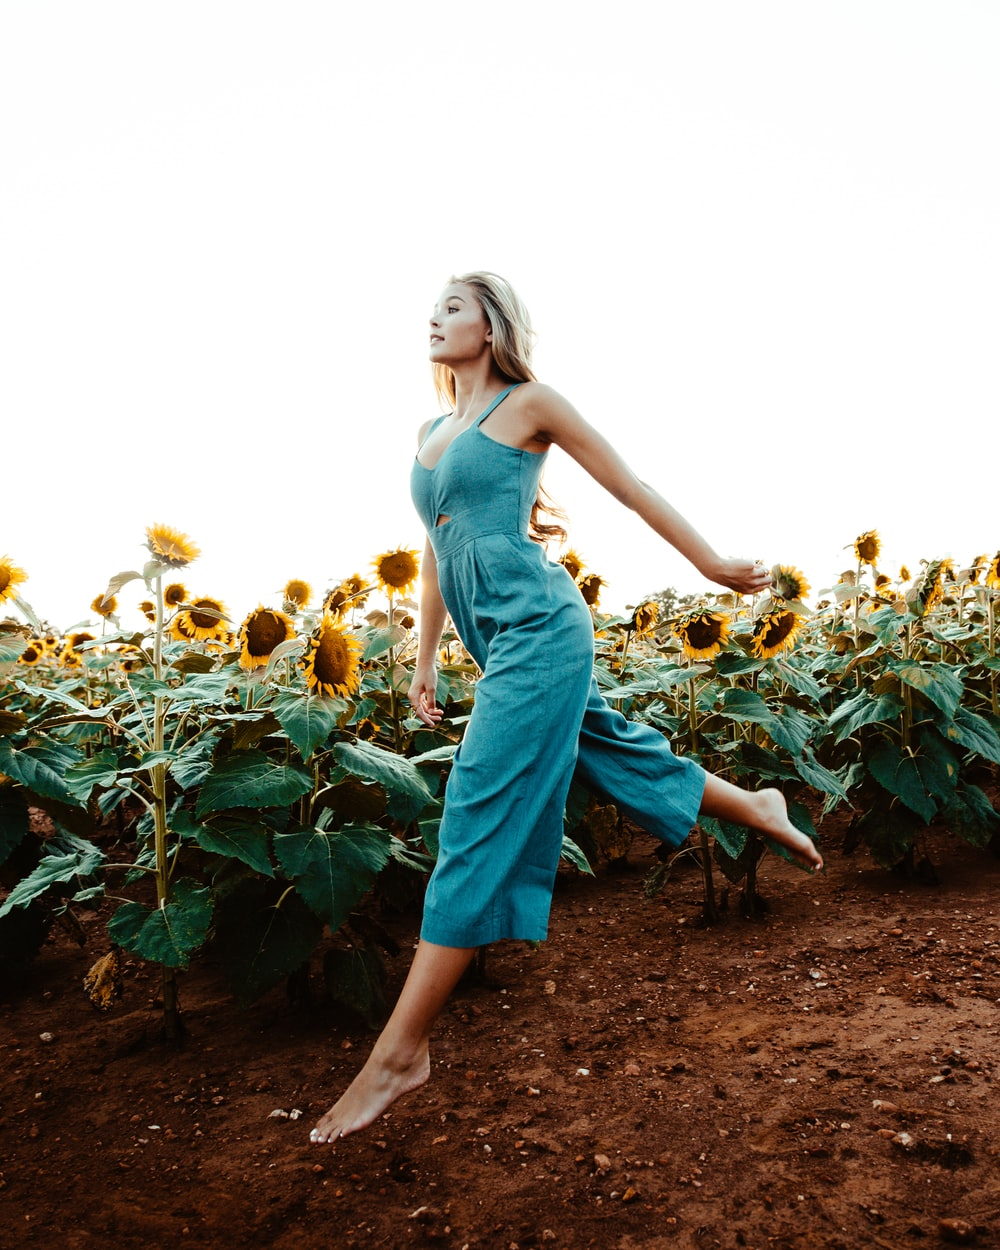 woman walking near the sunflower field at daytime